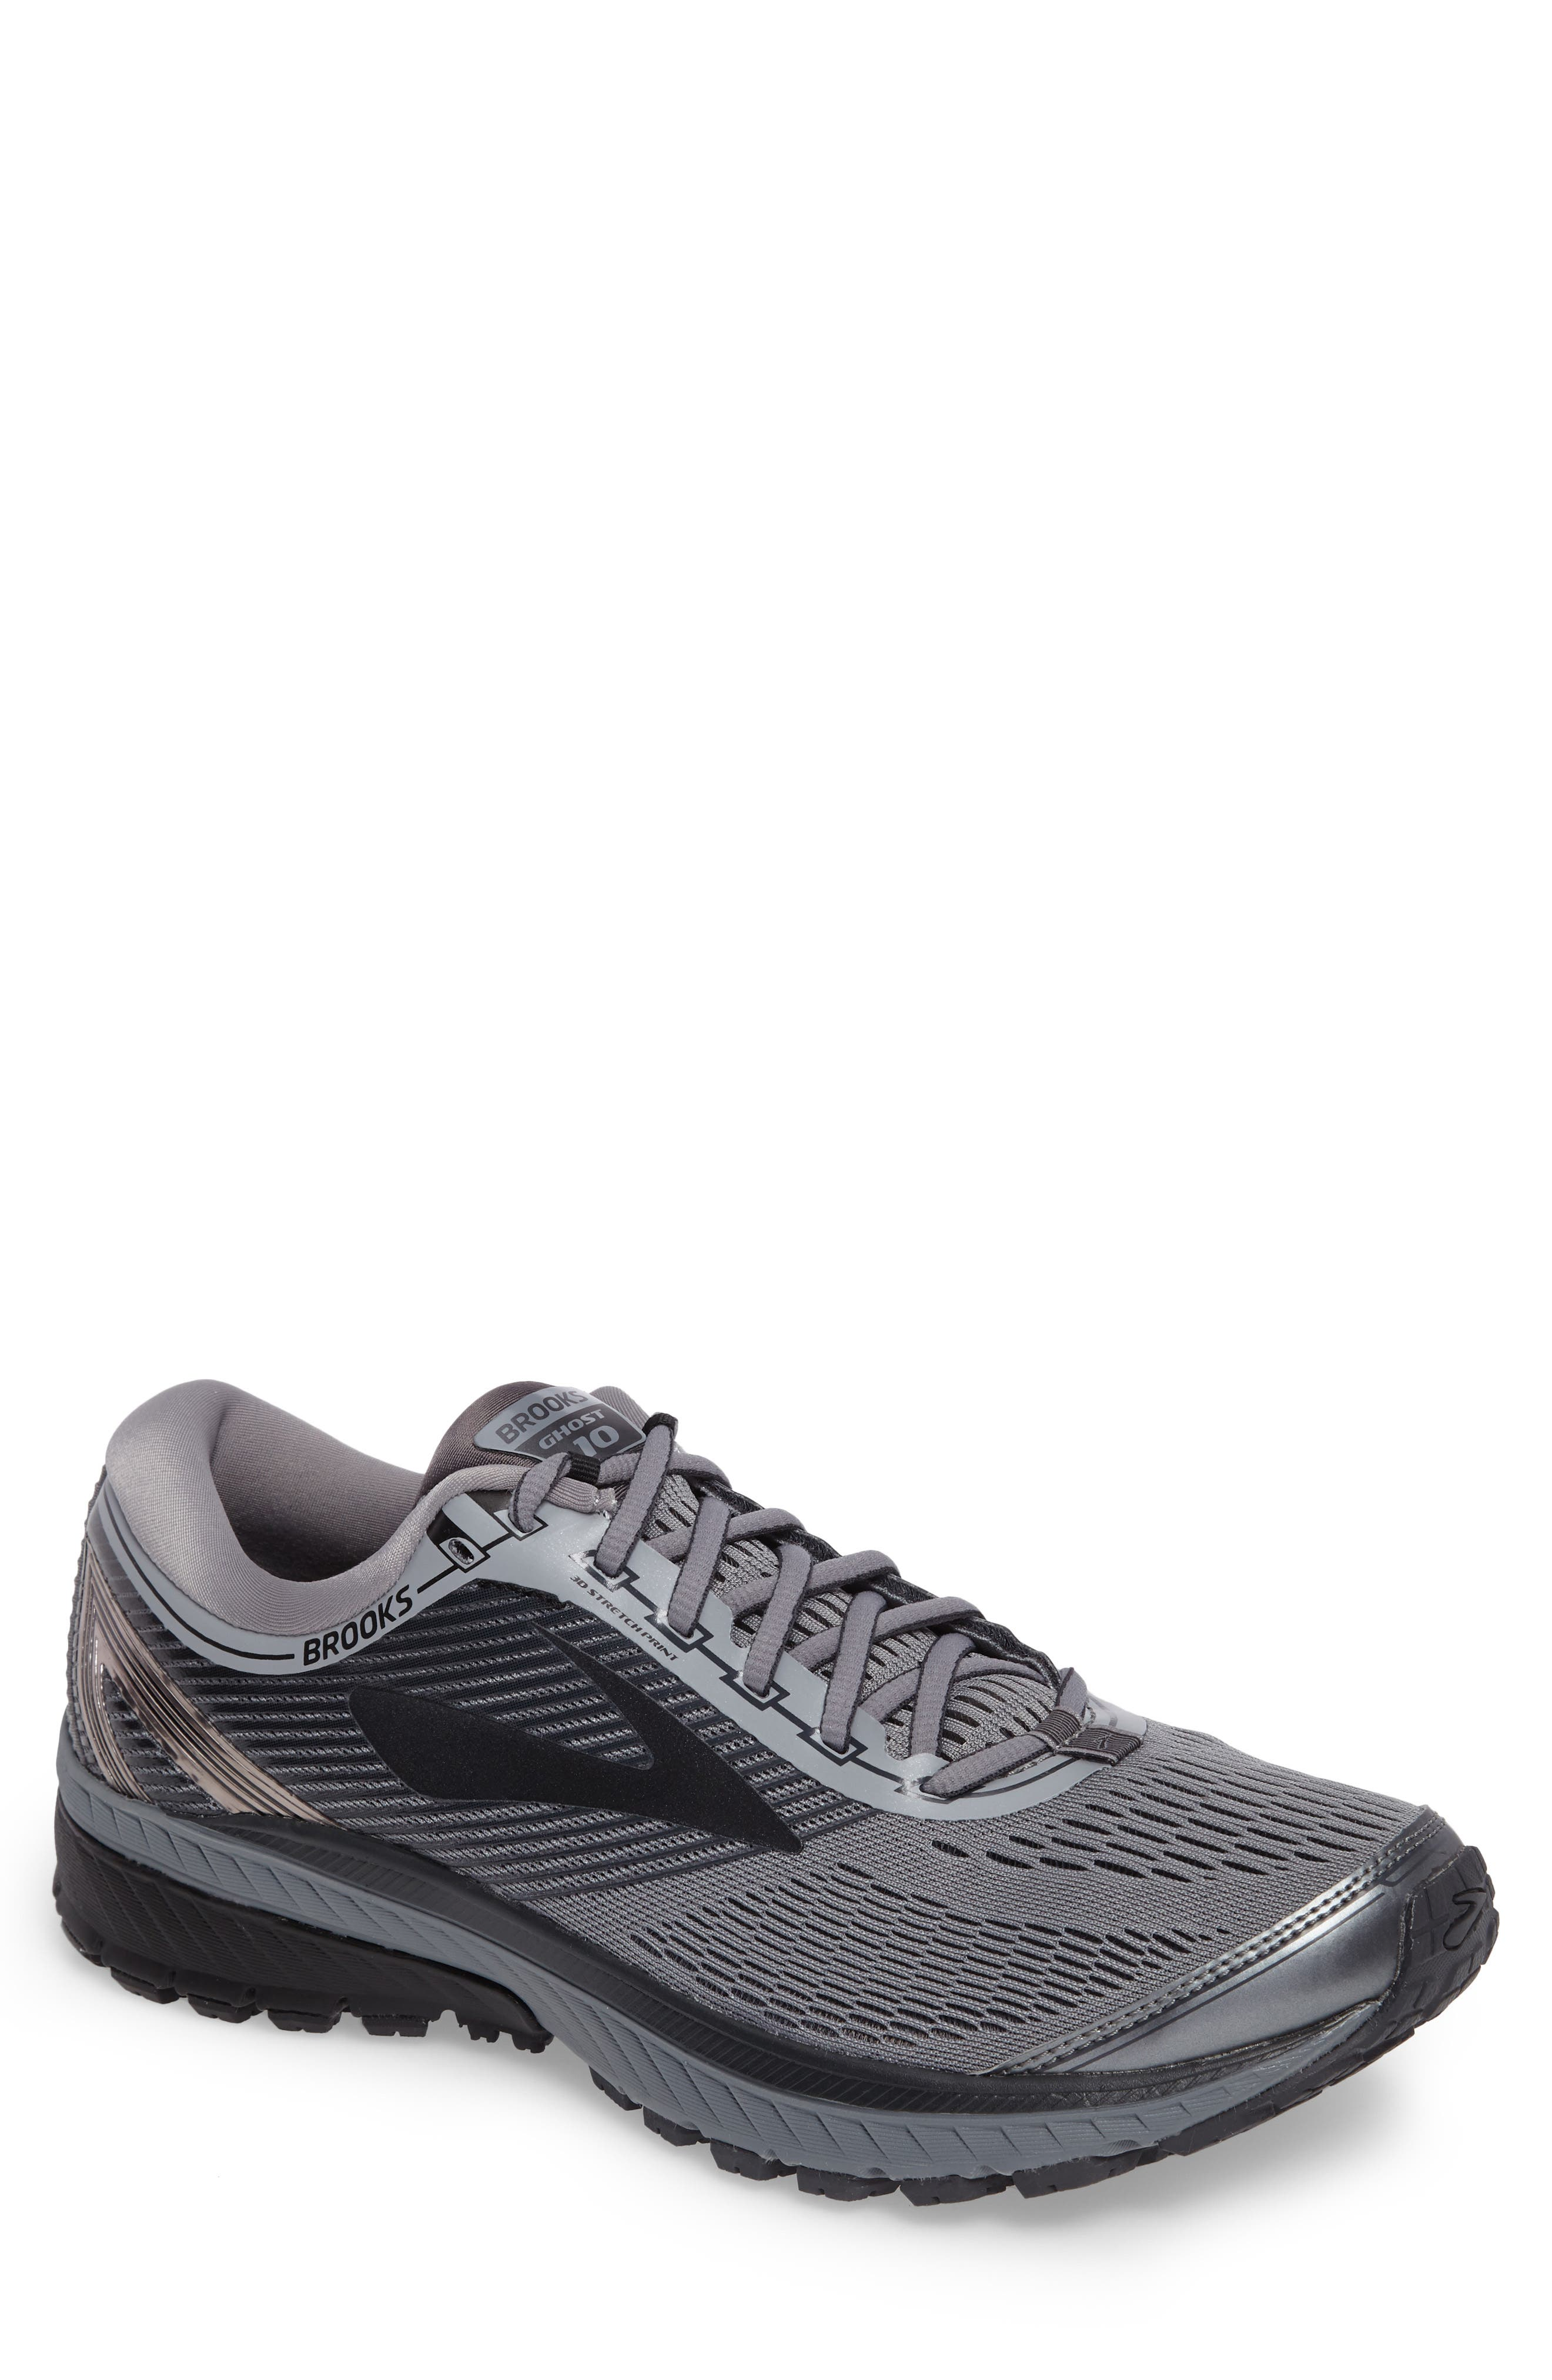 Ghost 10 Running Shoe,                         Main,                         color, GREY/ METALLIC CHARCOAL/ EBONY